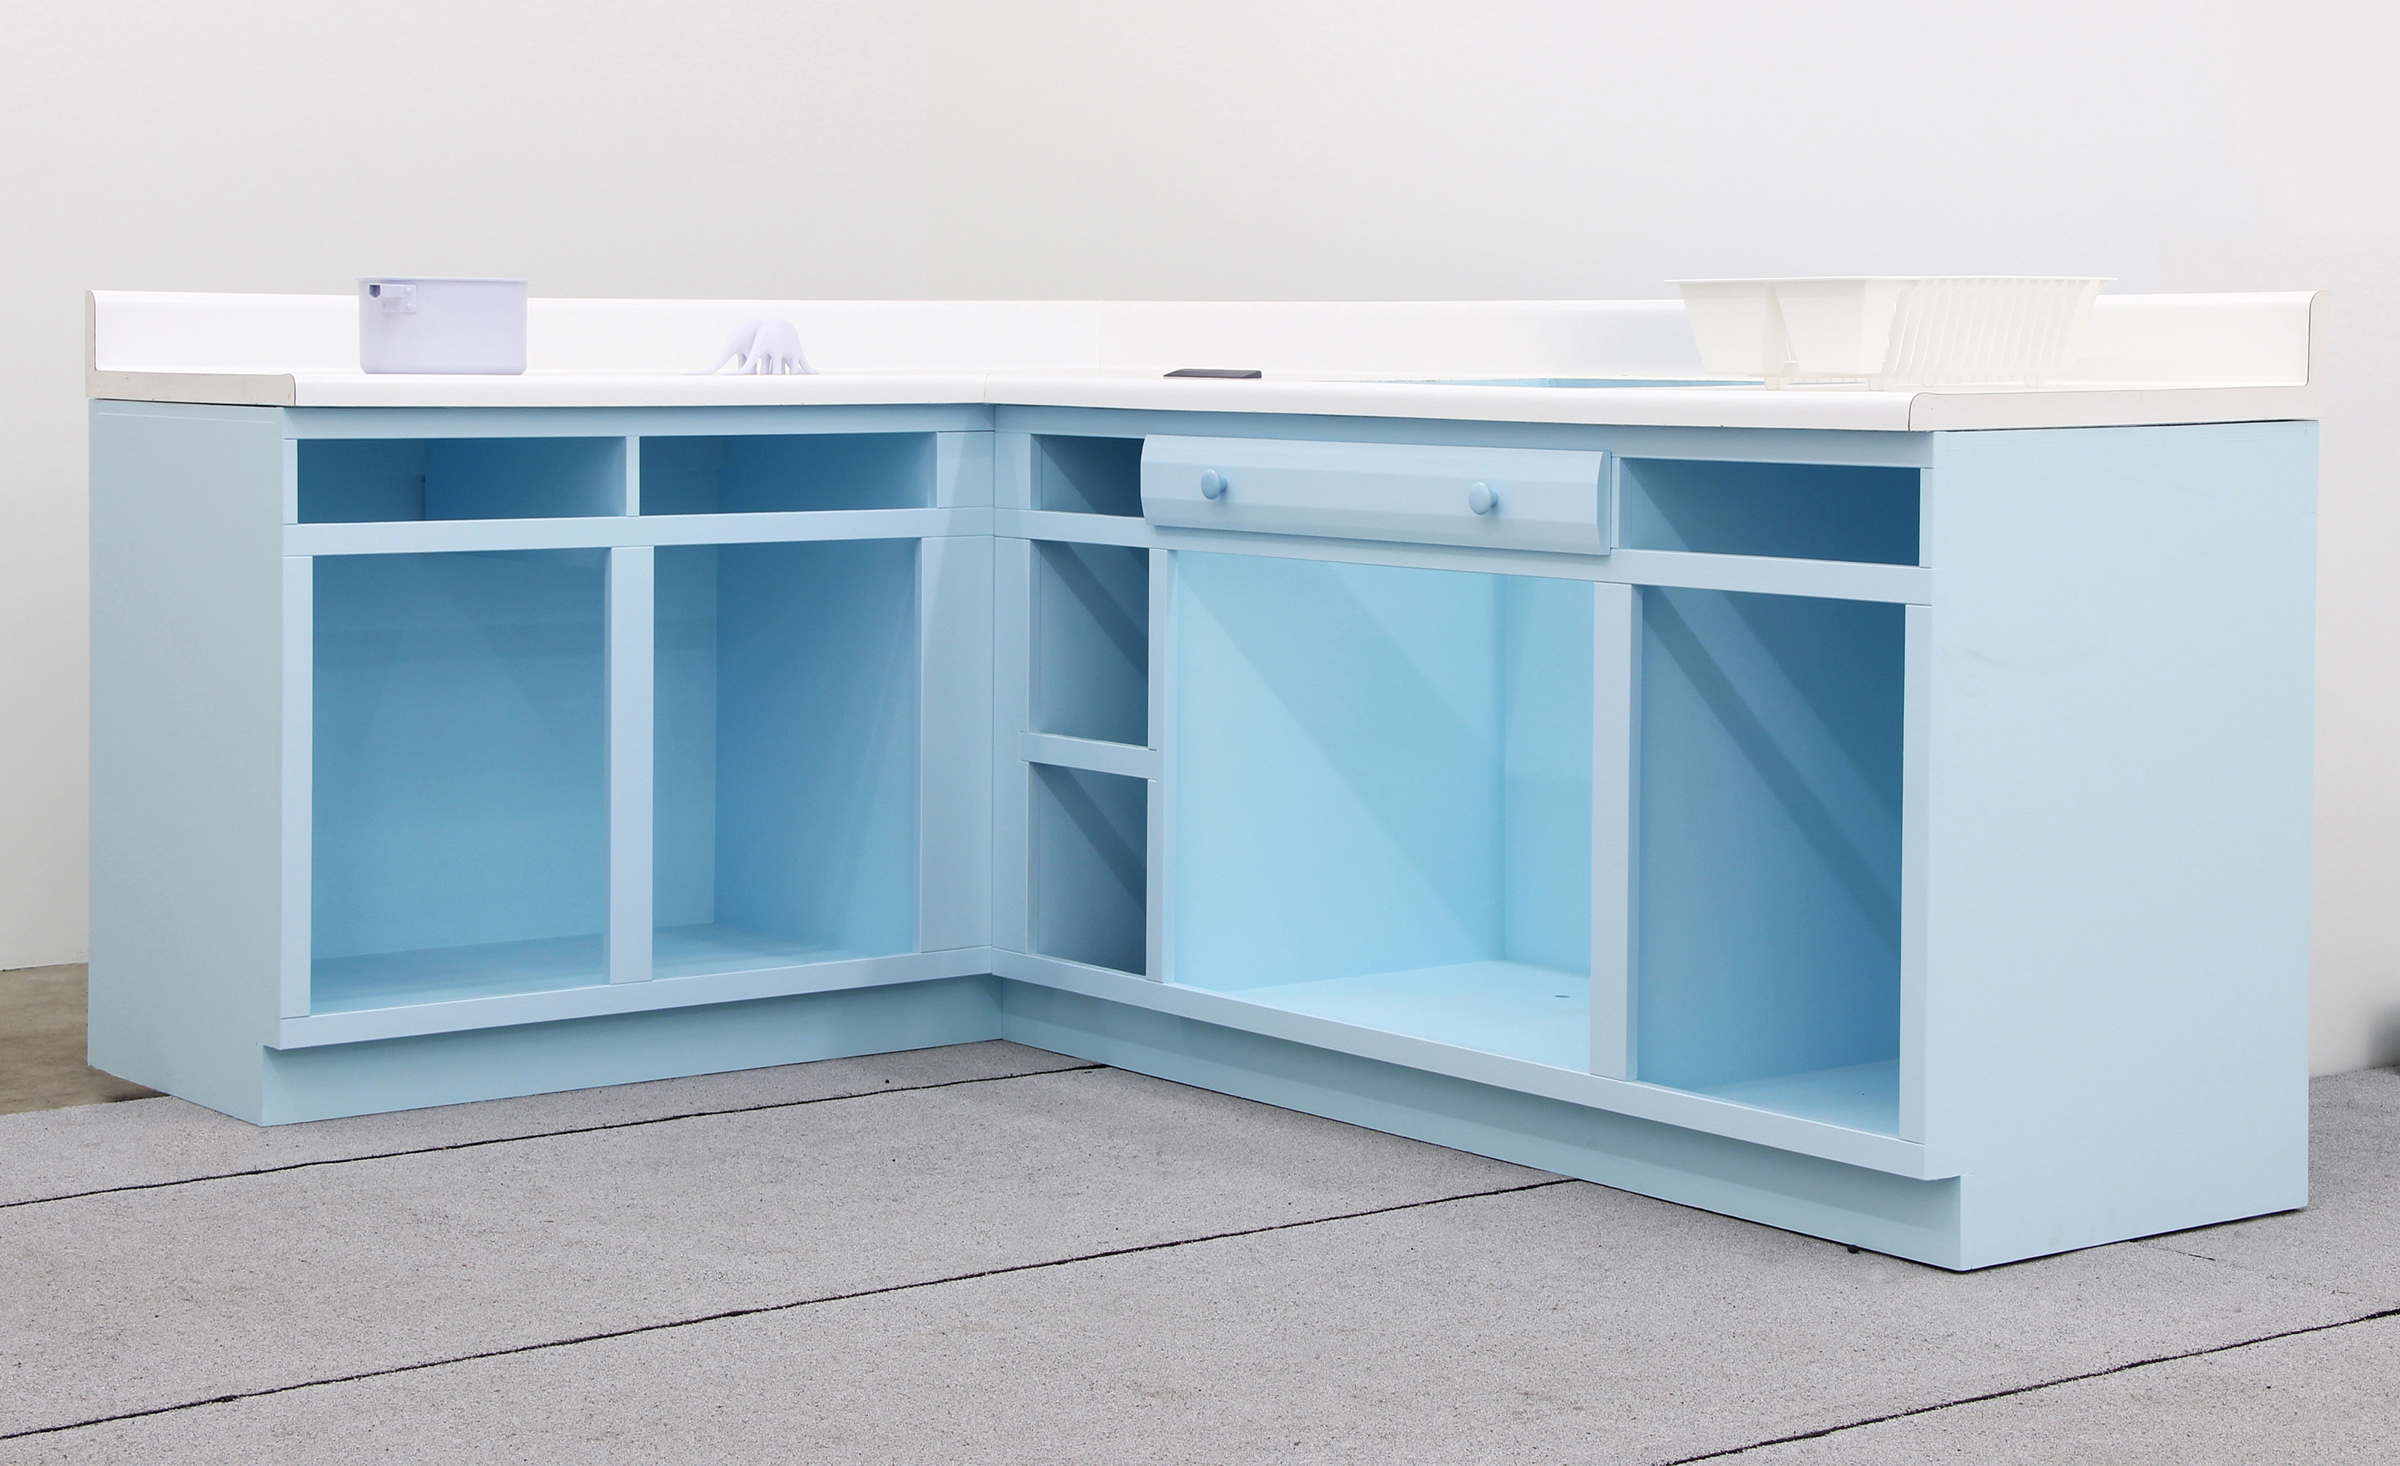 Nathaniel Robinson, Untitled, 2012, wood, paint, pigmented polyurethane resin, found countertop, 40h x 92.75w x 63.5d in.